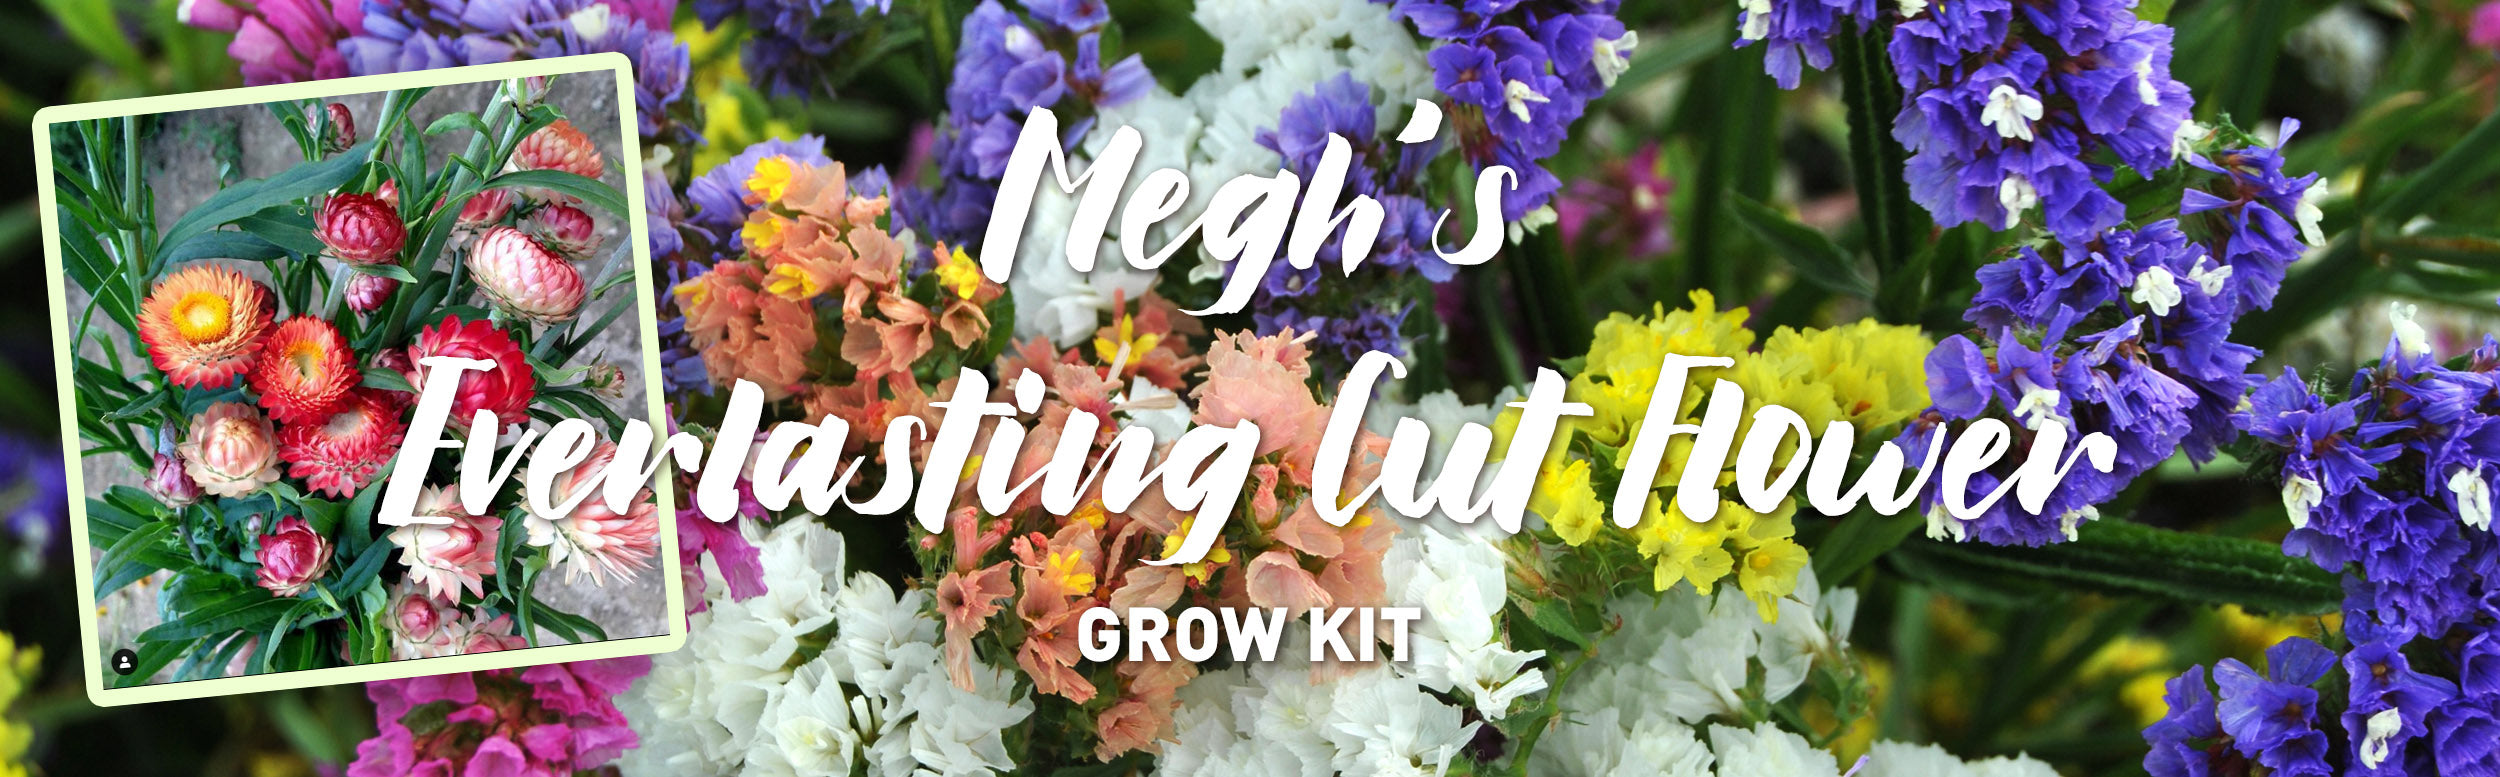 Megh's Everlasting Cut Flower Kit